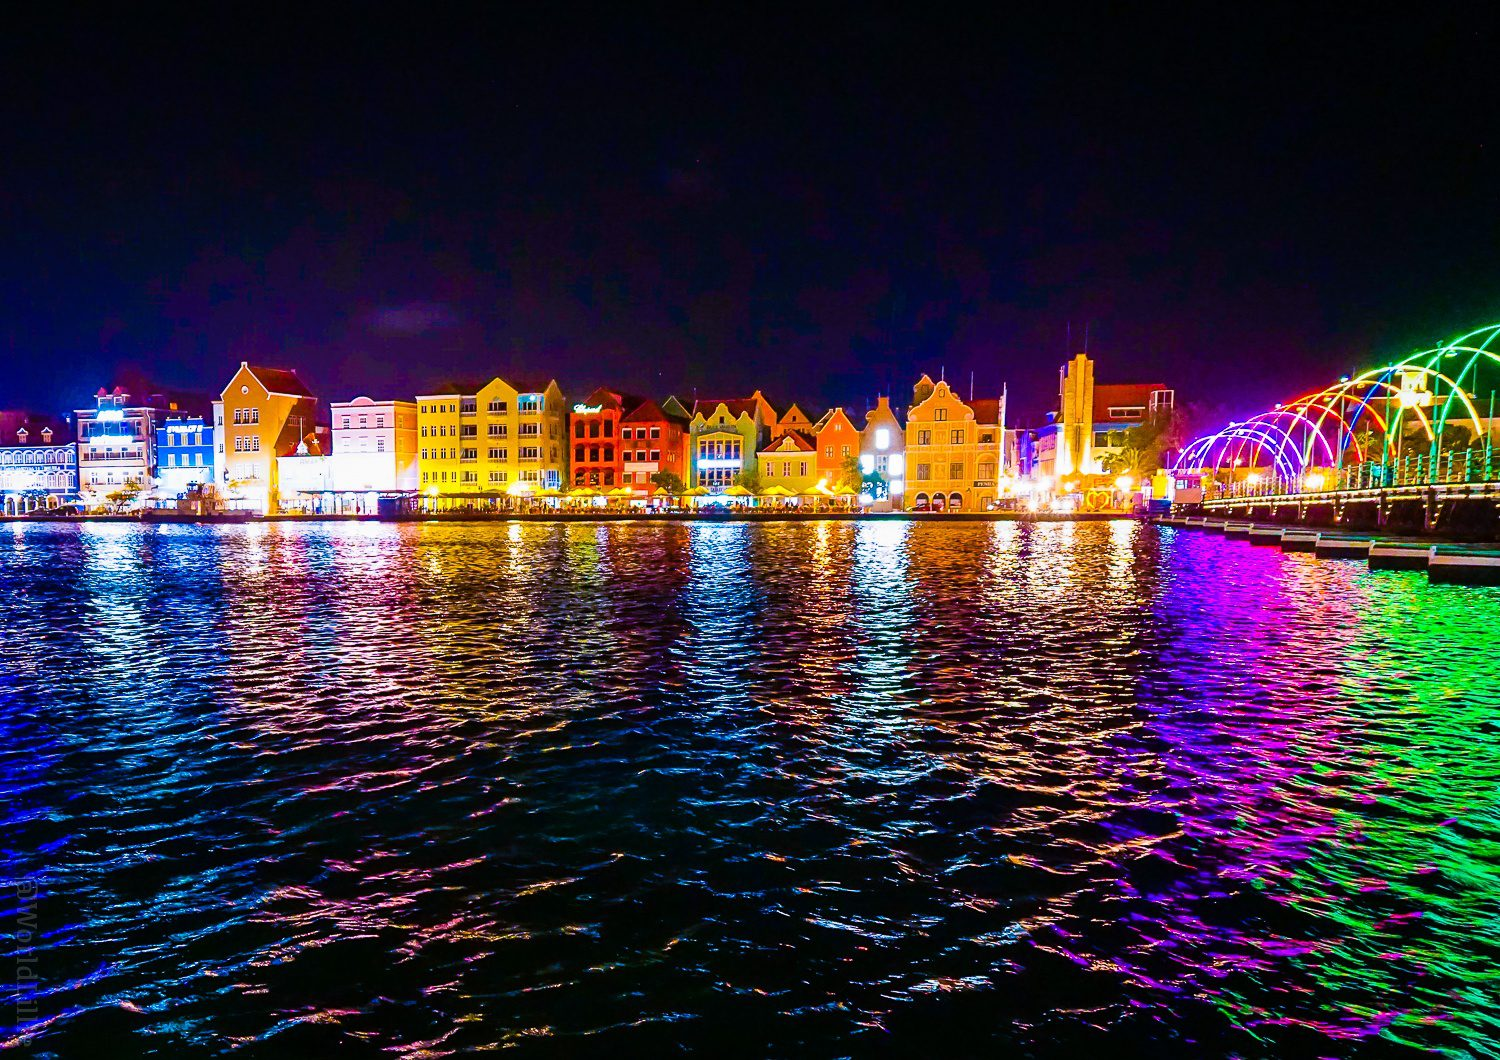 Colors of Willemstad.